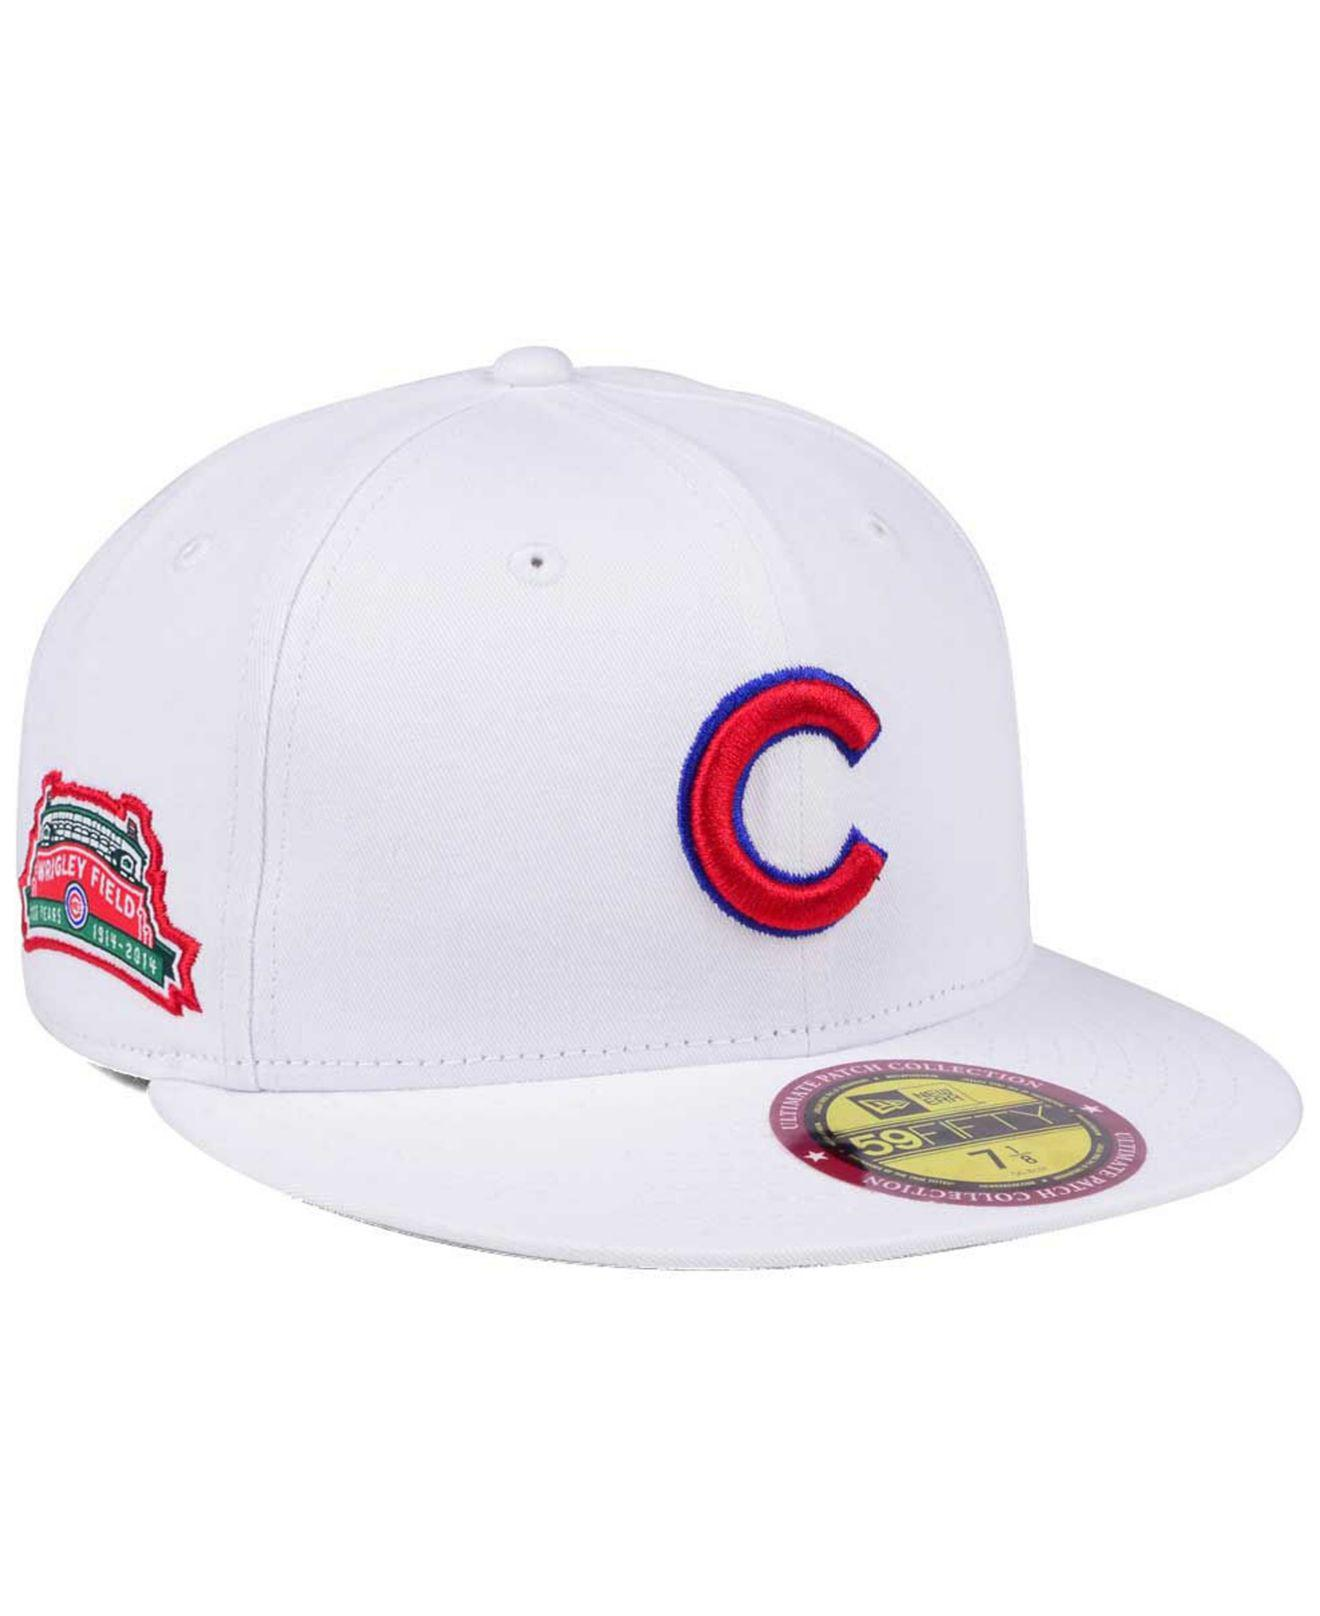 f42790abc938fd Lyst - KTZ The Ultimate Patch Collection Stadium 59fifty Cap in ...